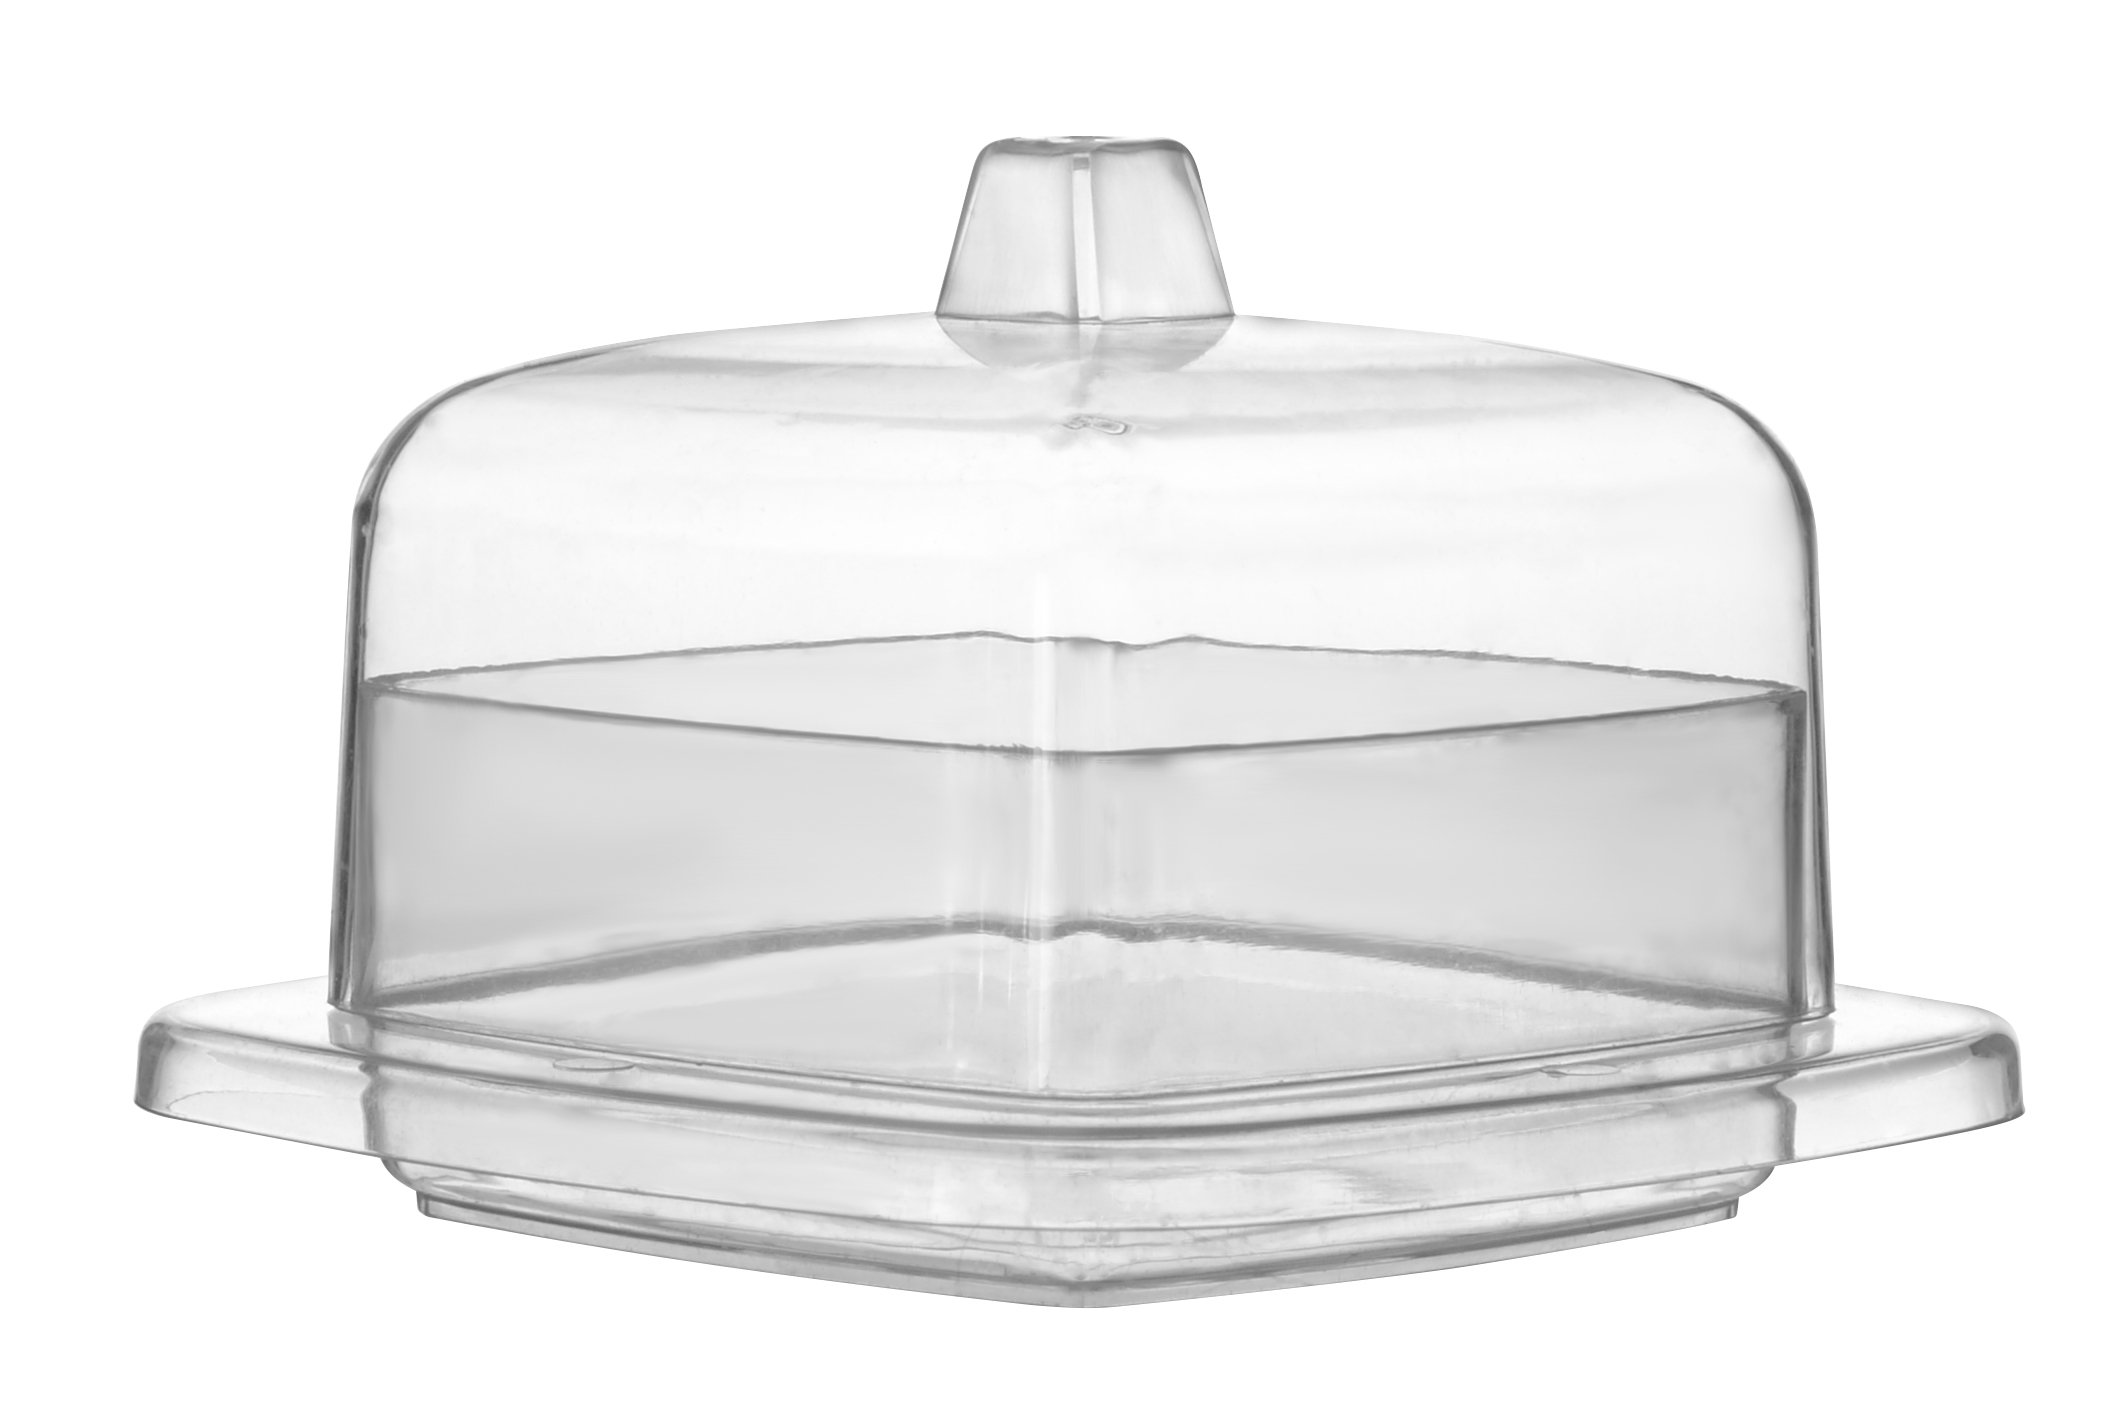 Tiny Temptations Fineline 6701 Square Tiny Dome with Lid, 3.25'' Diameter/1.75'' Height, Clear, 10/12/120 Case